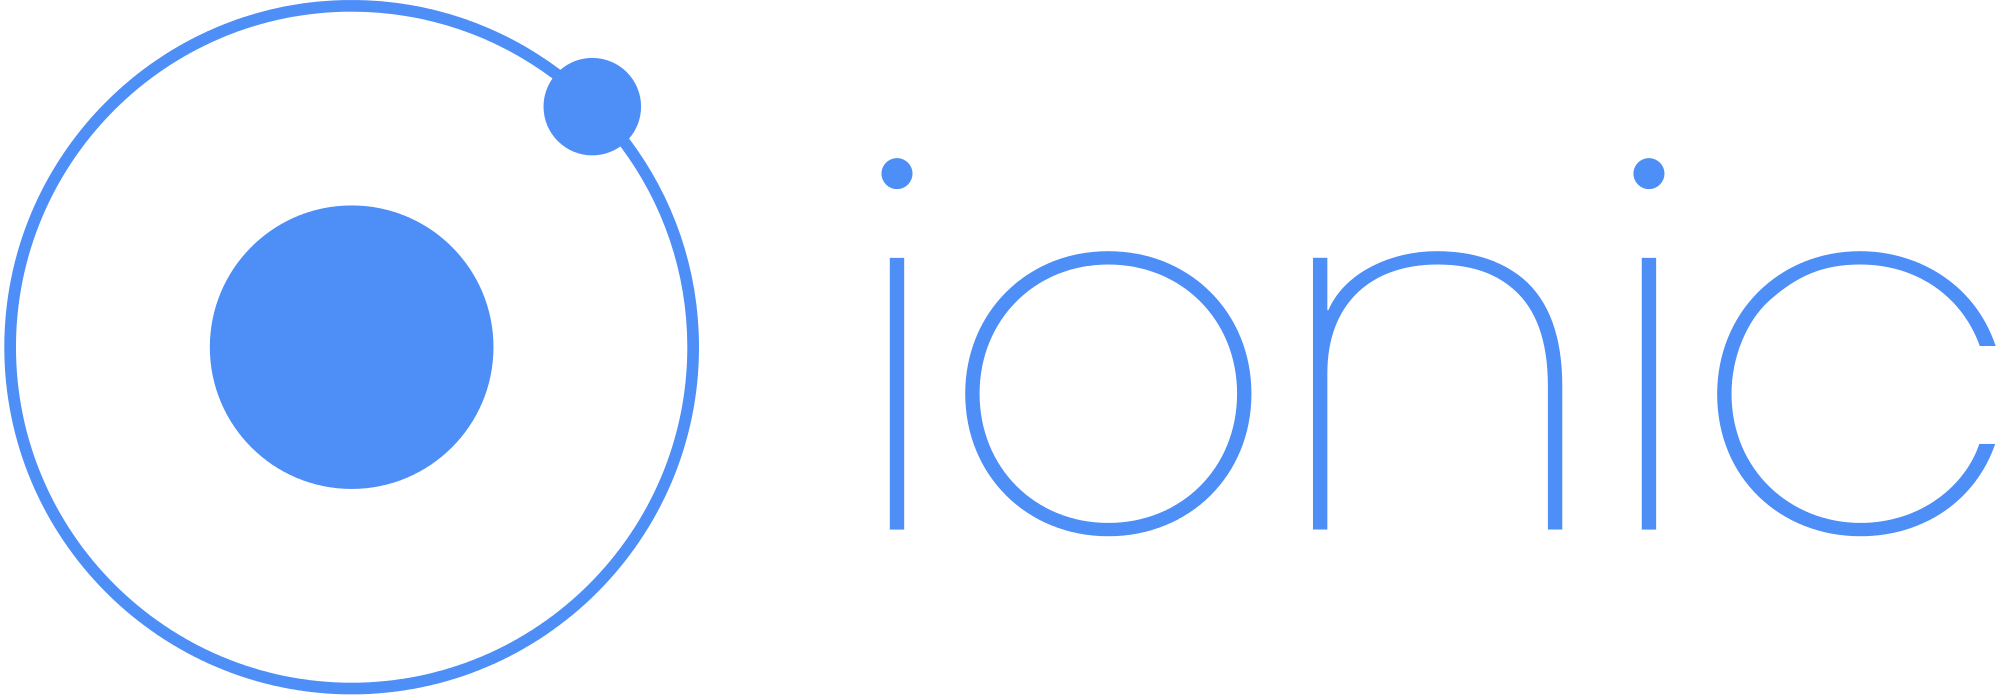 Ionic is an HTML5 Mobile development framework